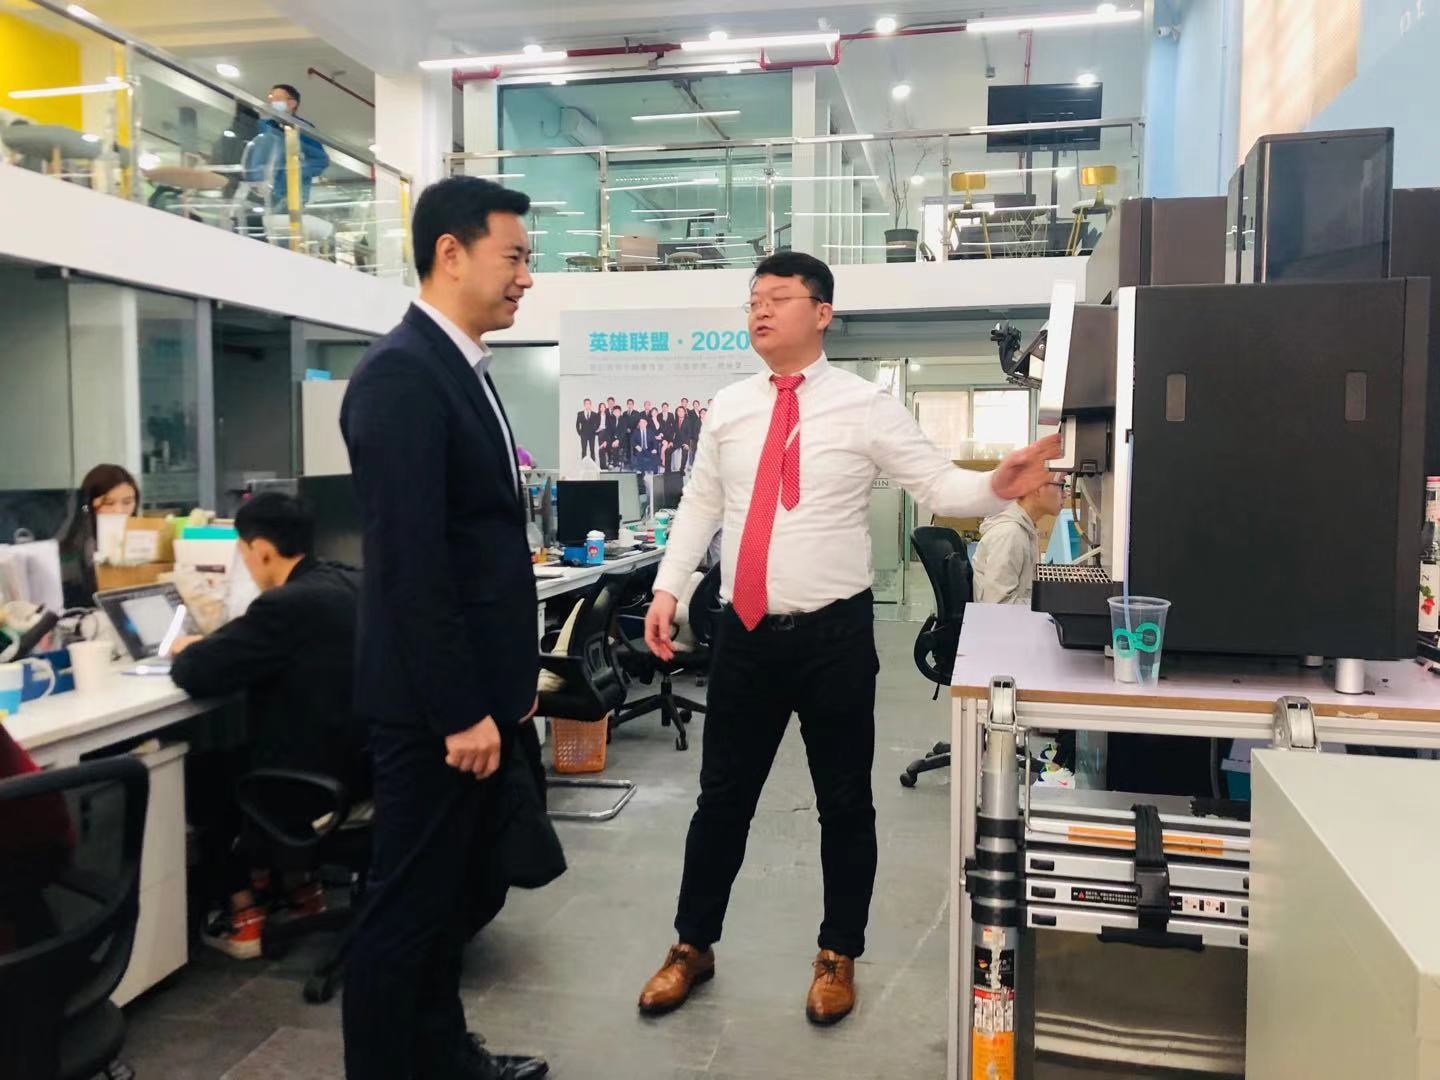 Deputy Director Yang of Changning District cordially inspected the Dolphin  Research and Development